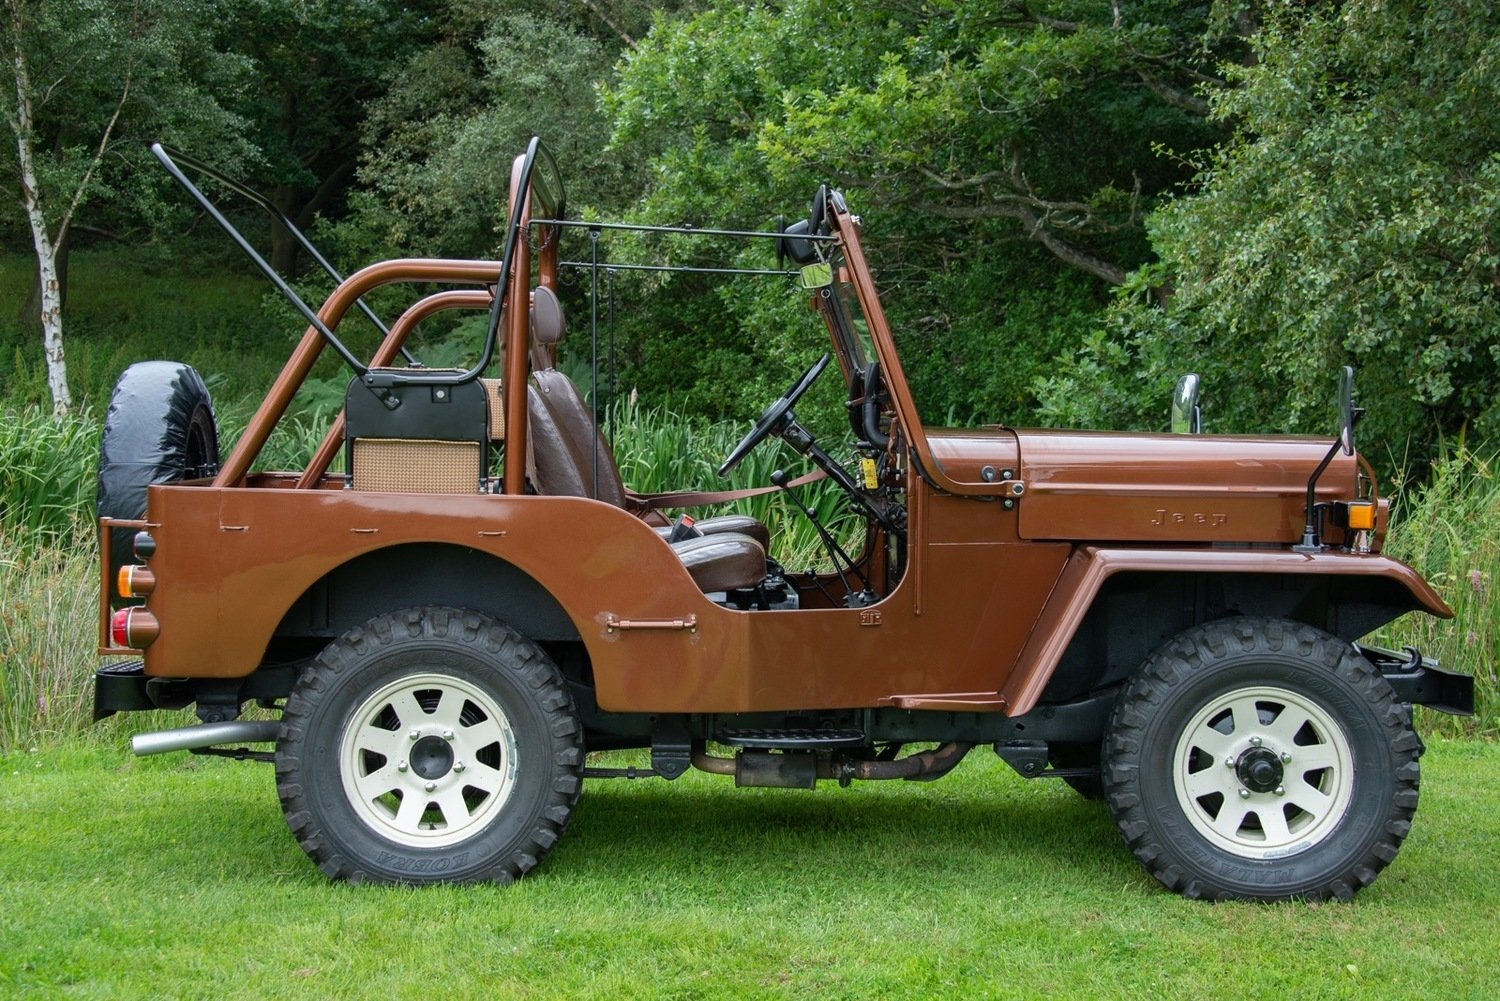 1980 Mitsibishi Jeep Wiley J58 Soft Top (SWB) For Sale (picture 4 of 6)